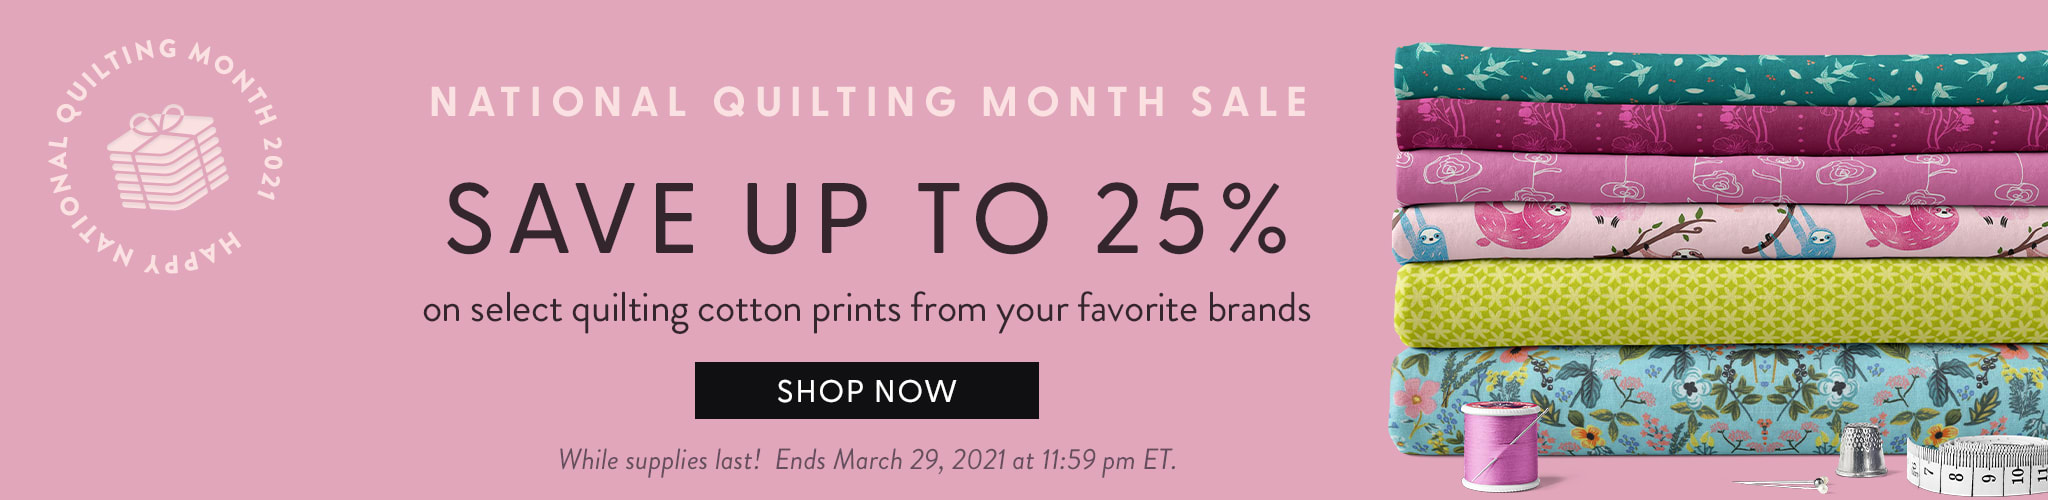 National Quilting Month Sale - Save up to 25% on select quilting fabrics from your favorites brands